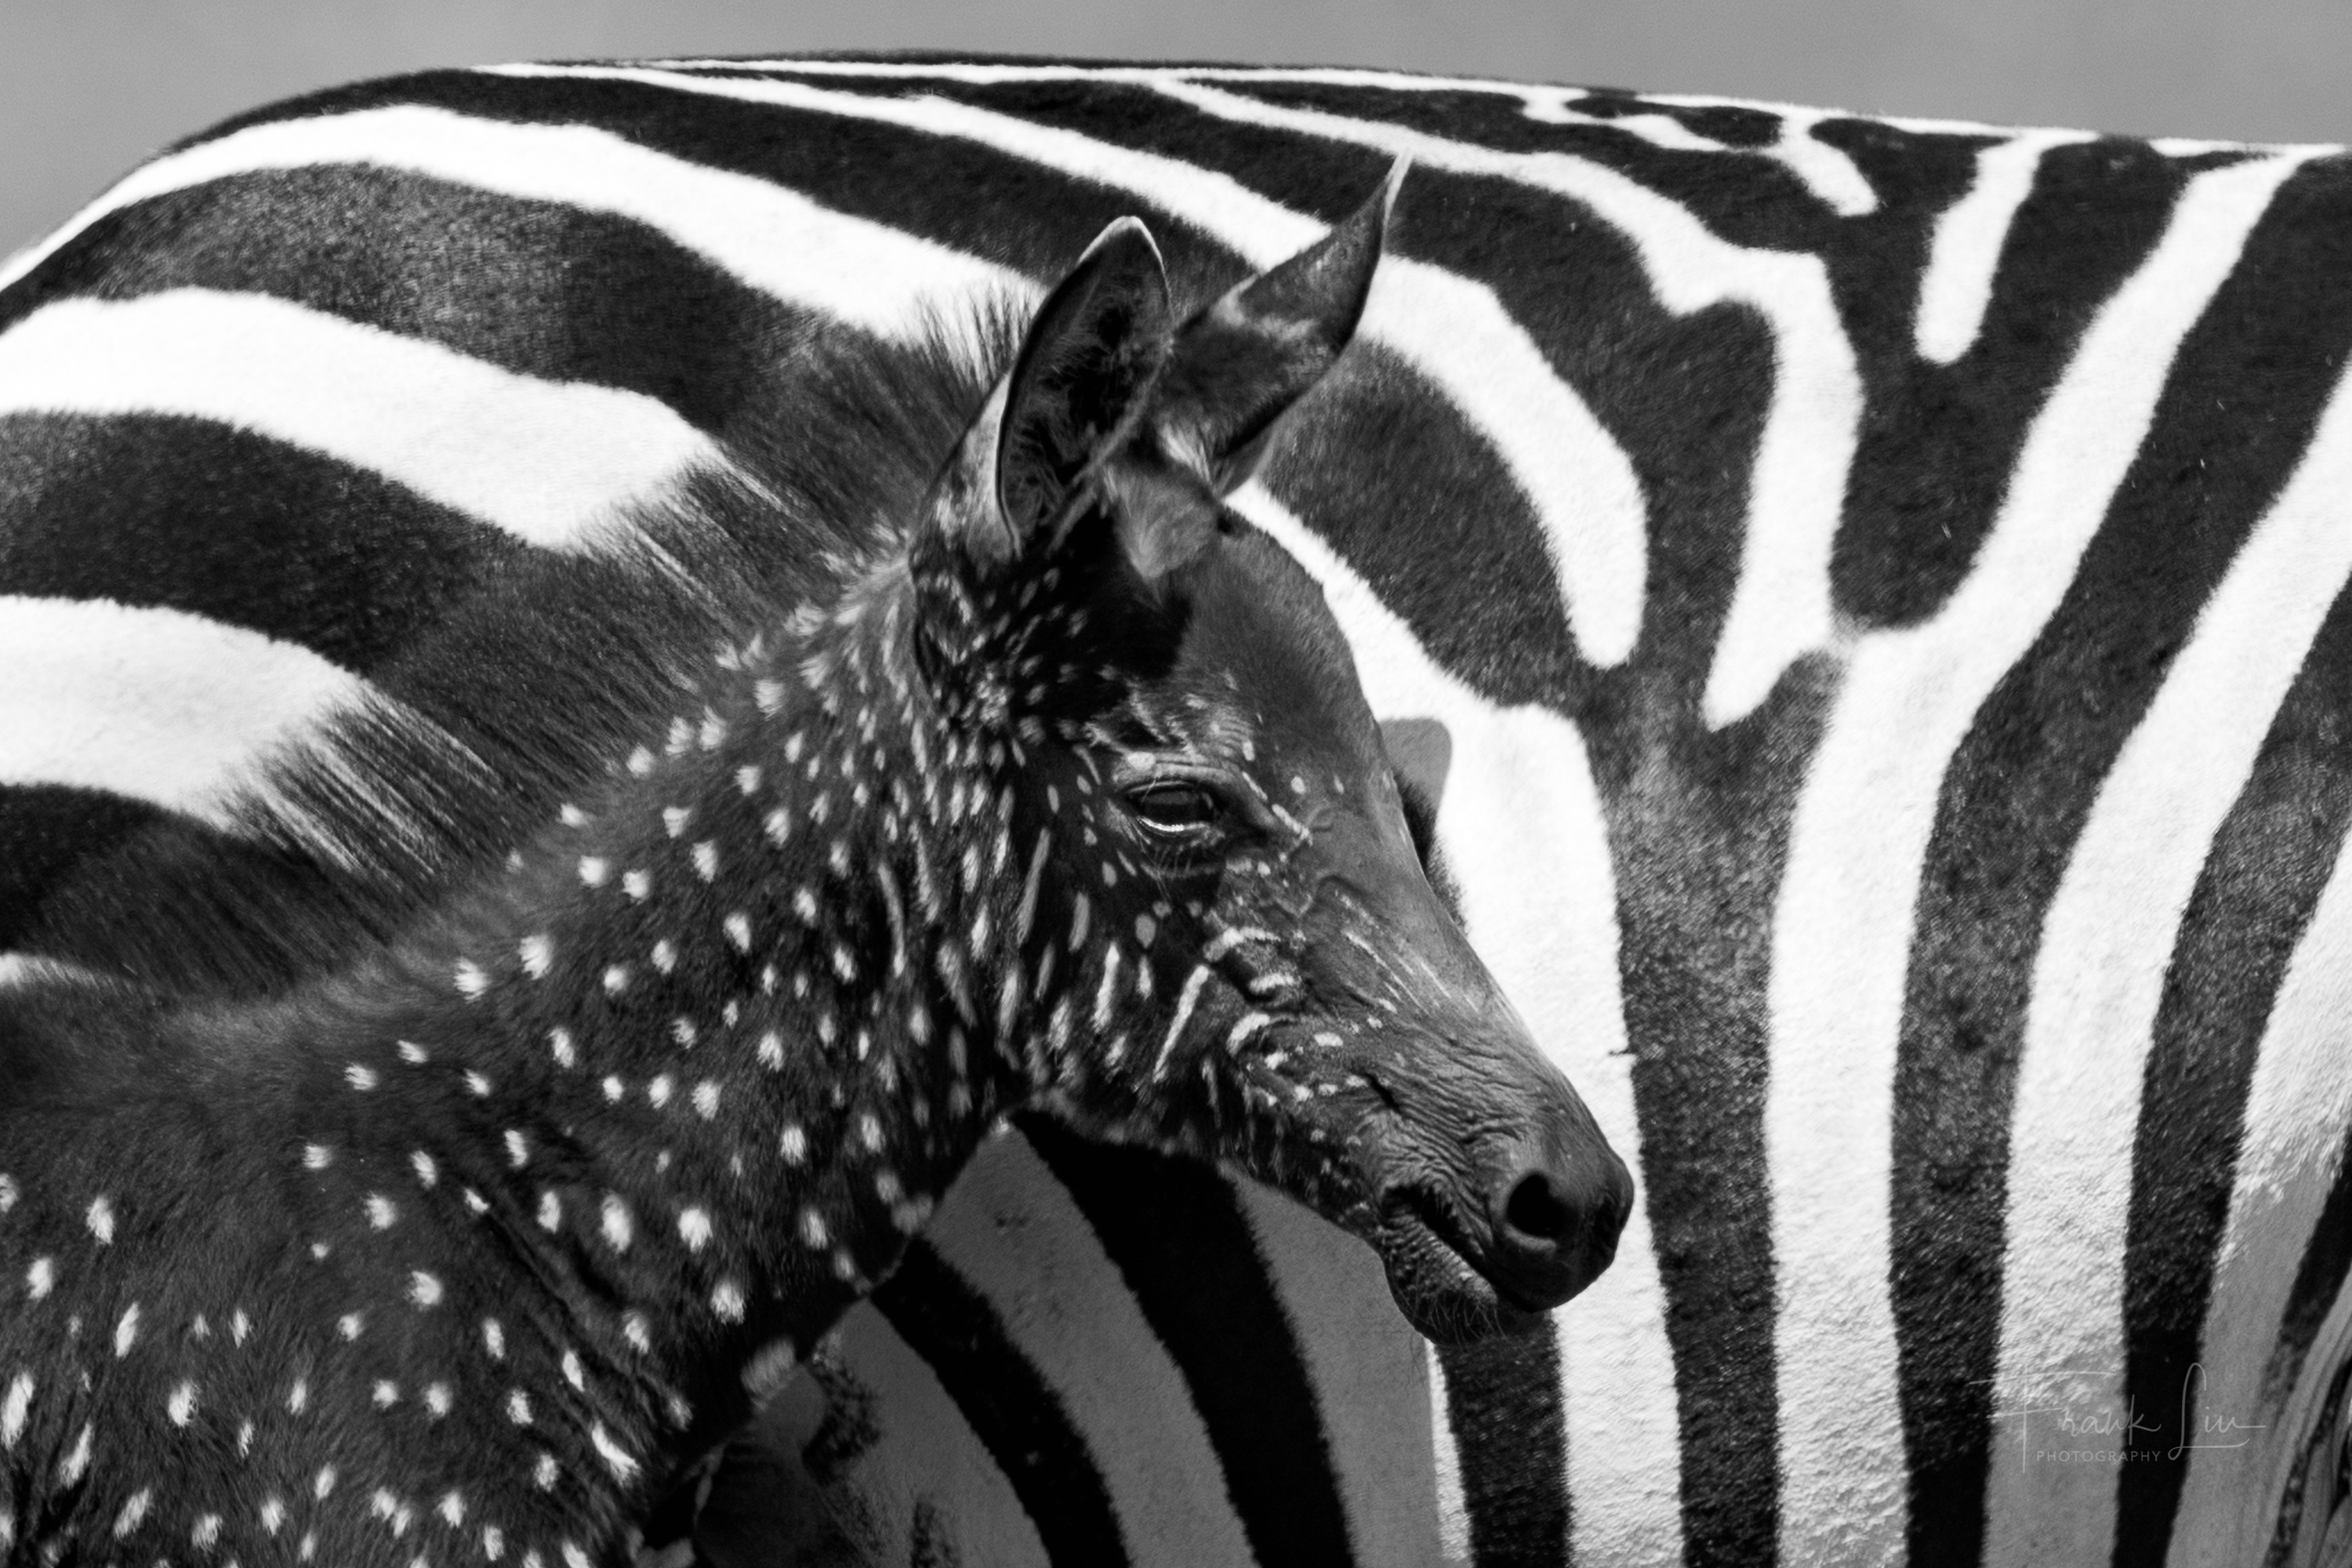 Kenya's Masai Mara National Reserve Is Home To An Adorable Polka-Dotted Zebra Foal